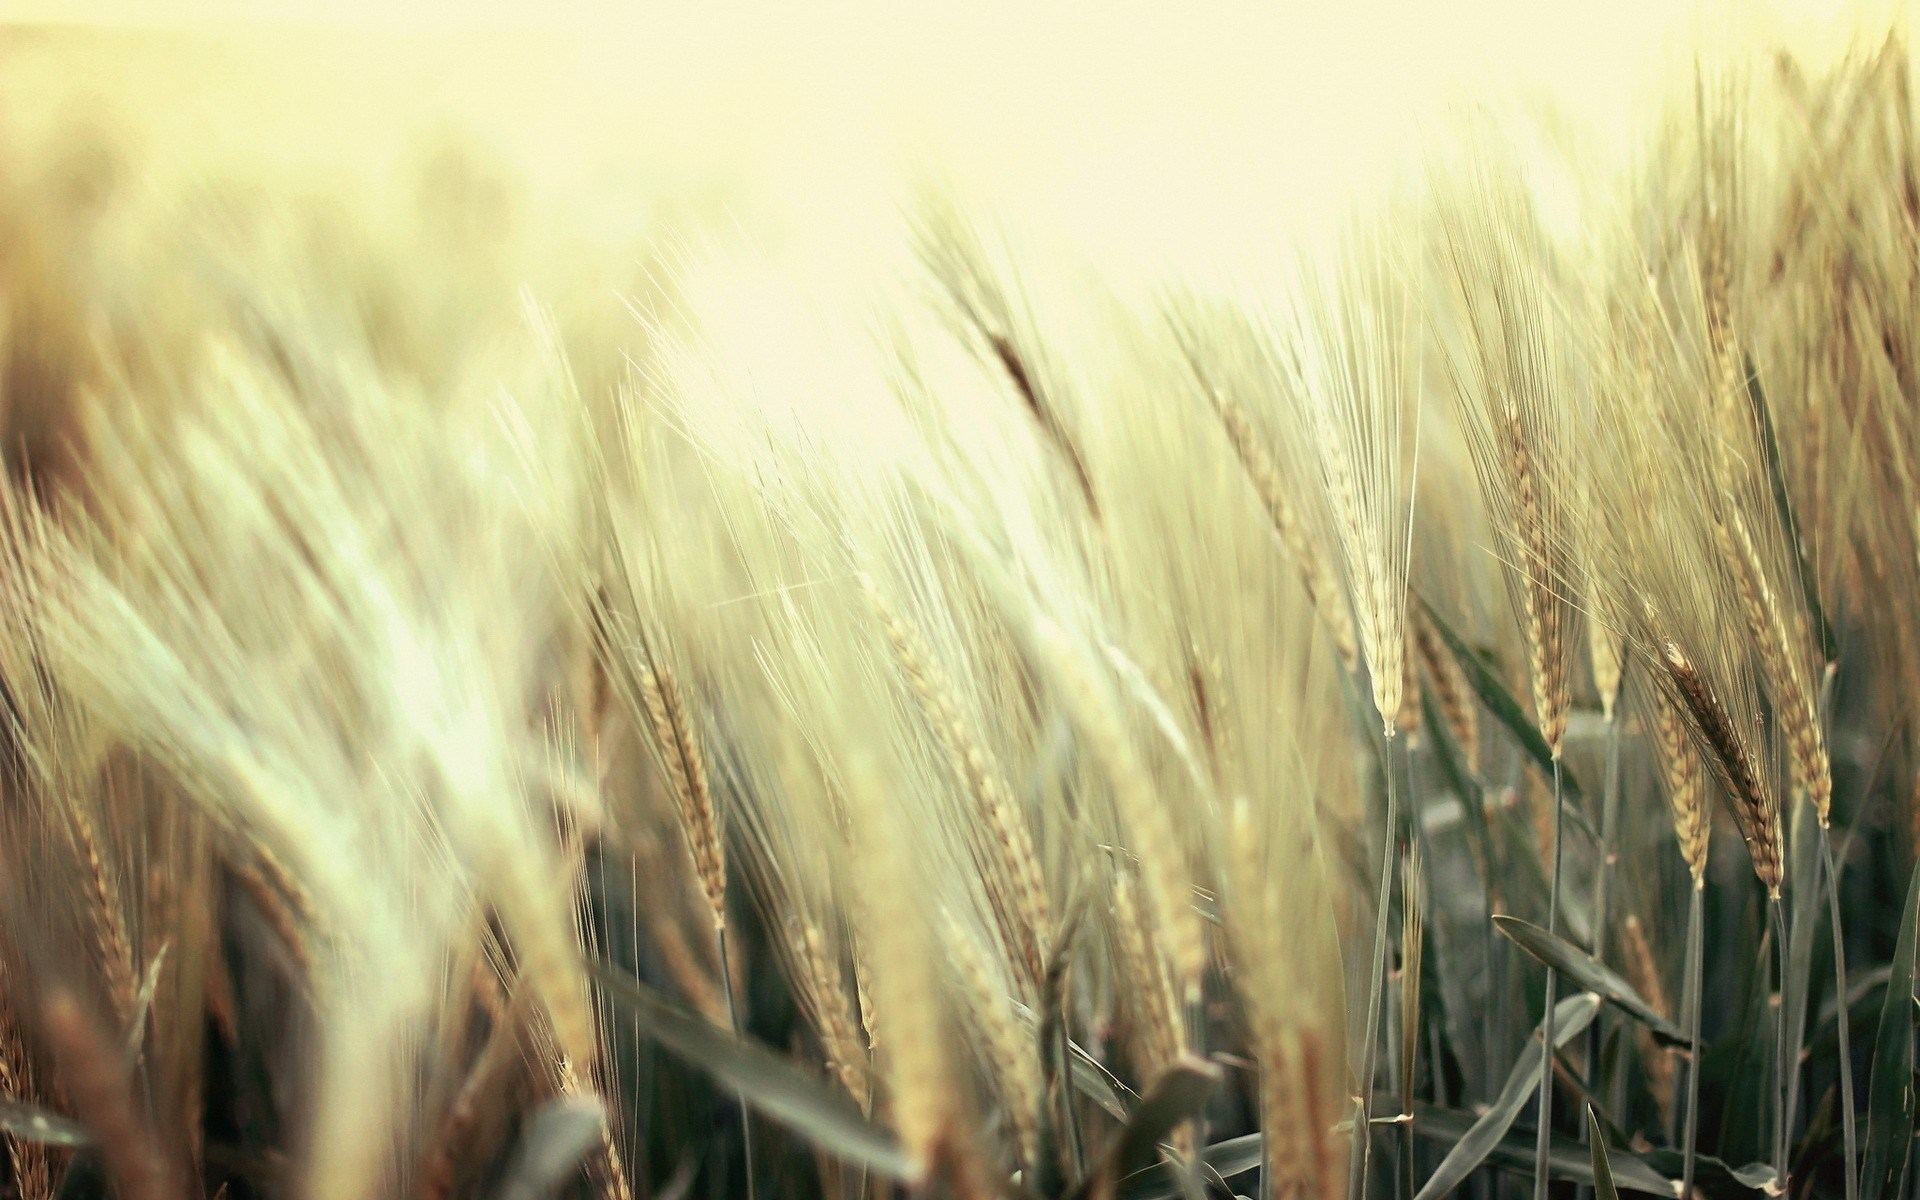 wheat field images